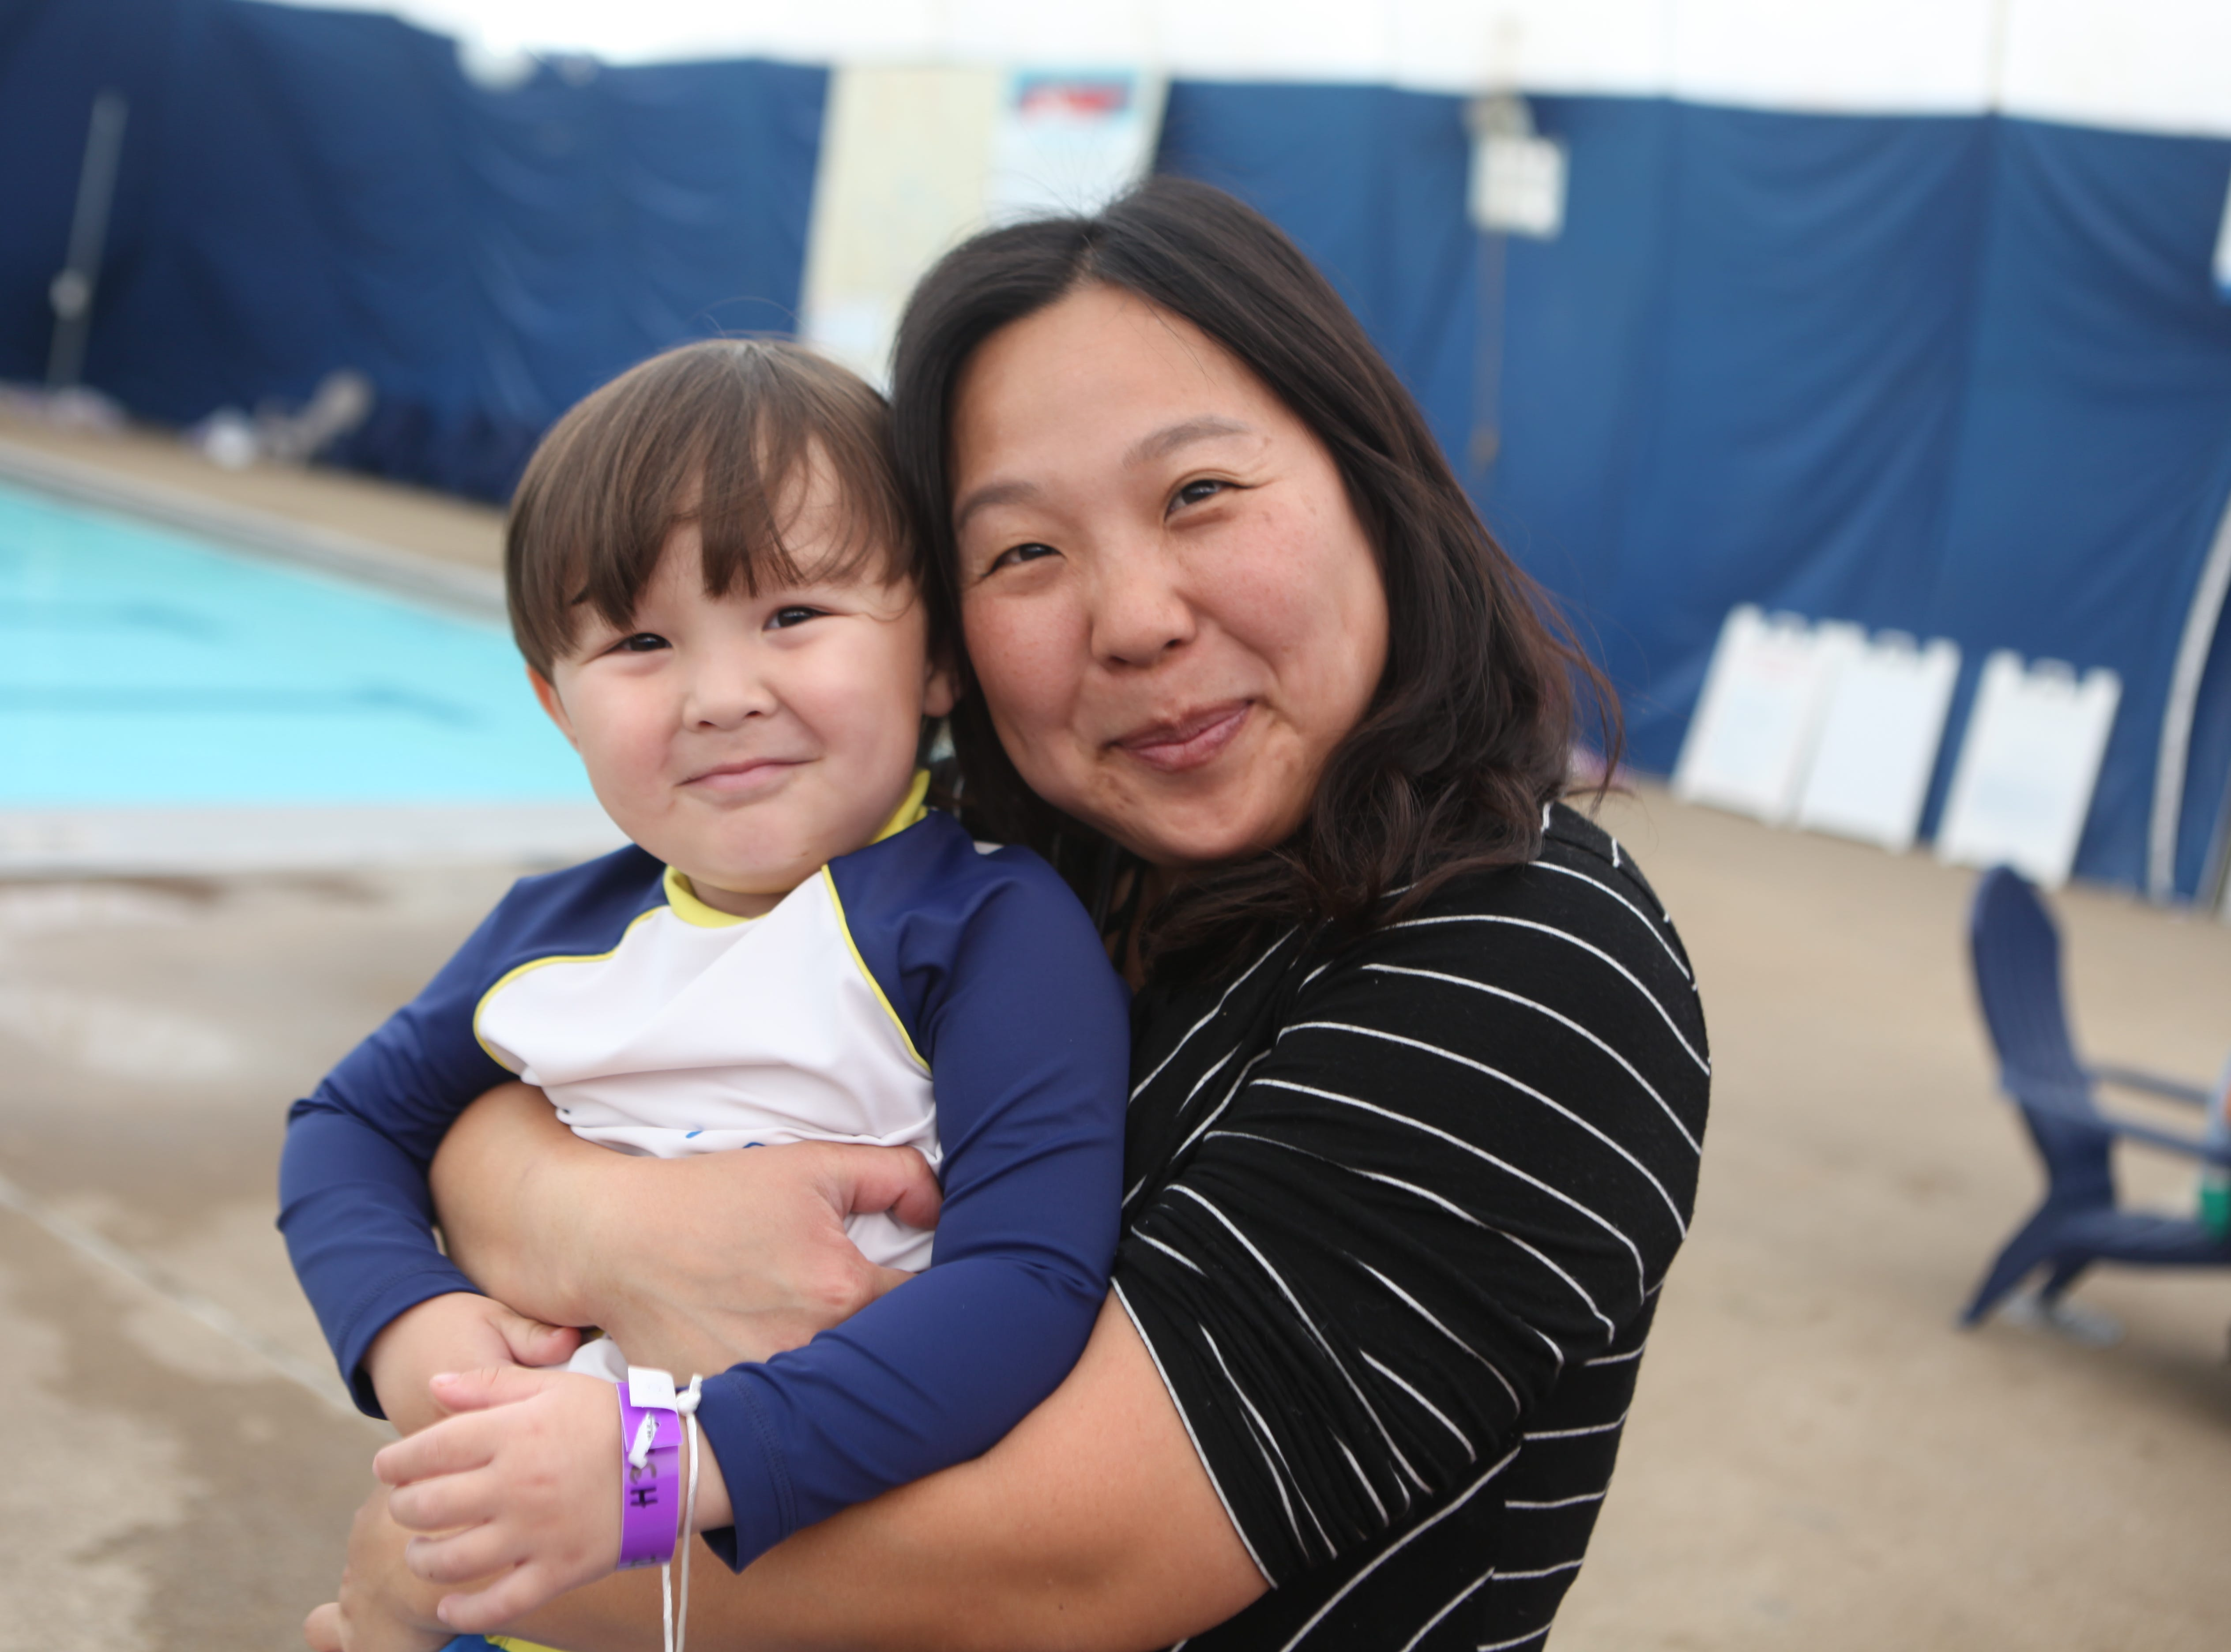 Liam Guy and Okhee Kim at the Wettest Egg Hunt at the New Providence Aquatic Center on Saturday, April 13, 2019.